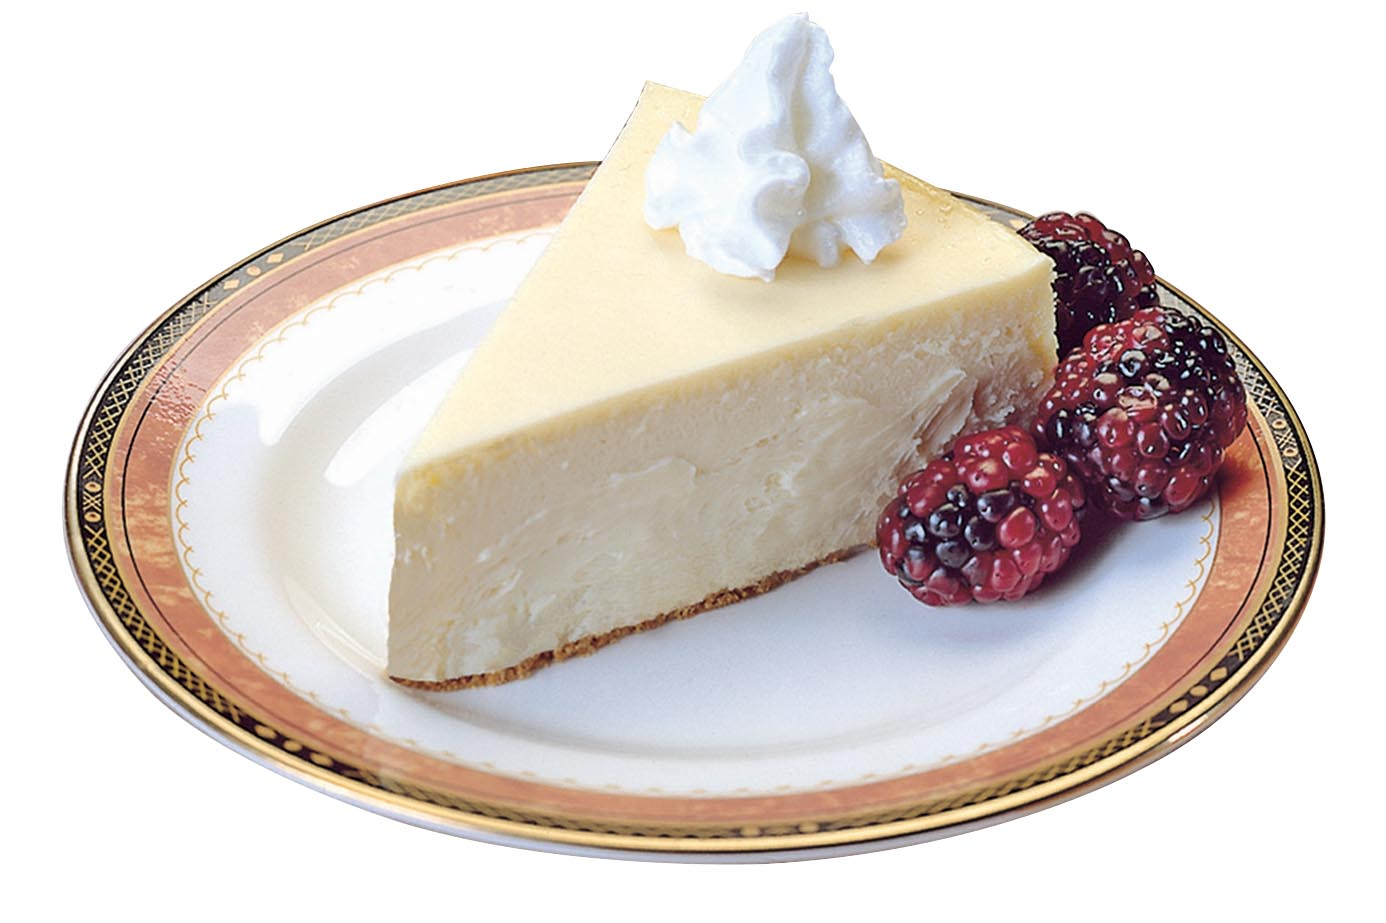 105 - Plain Cheesecake